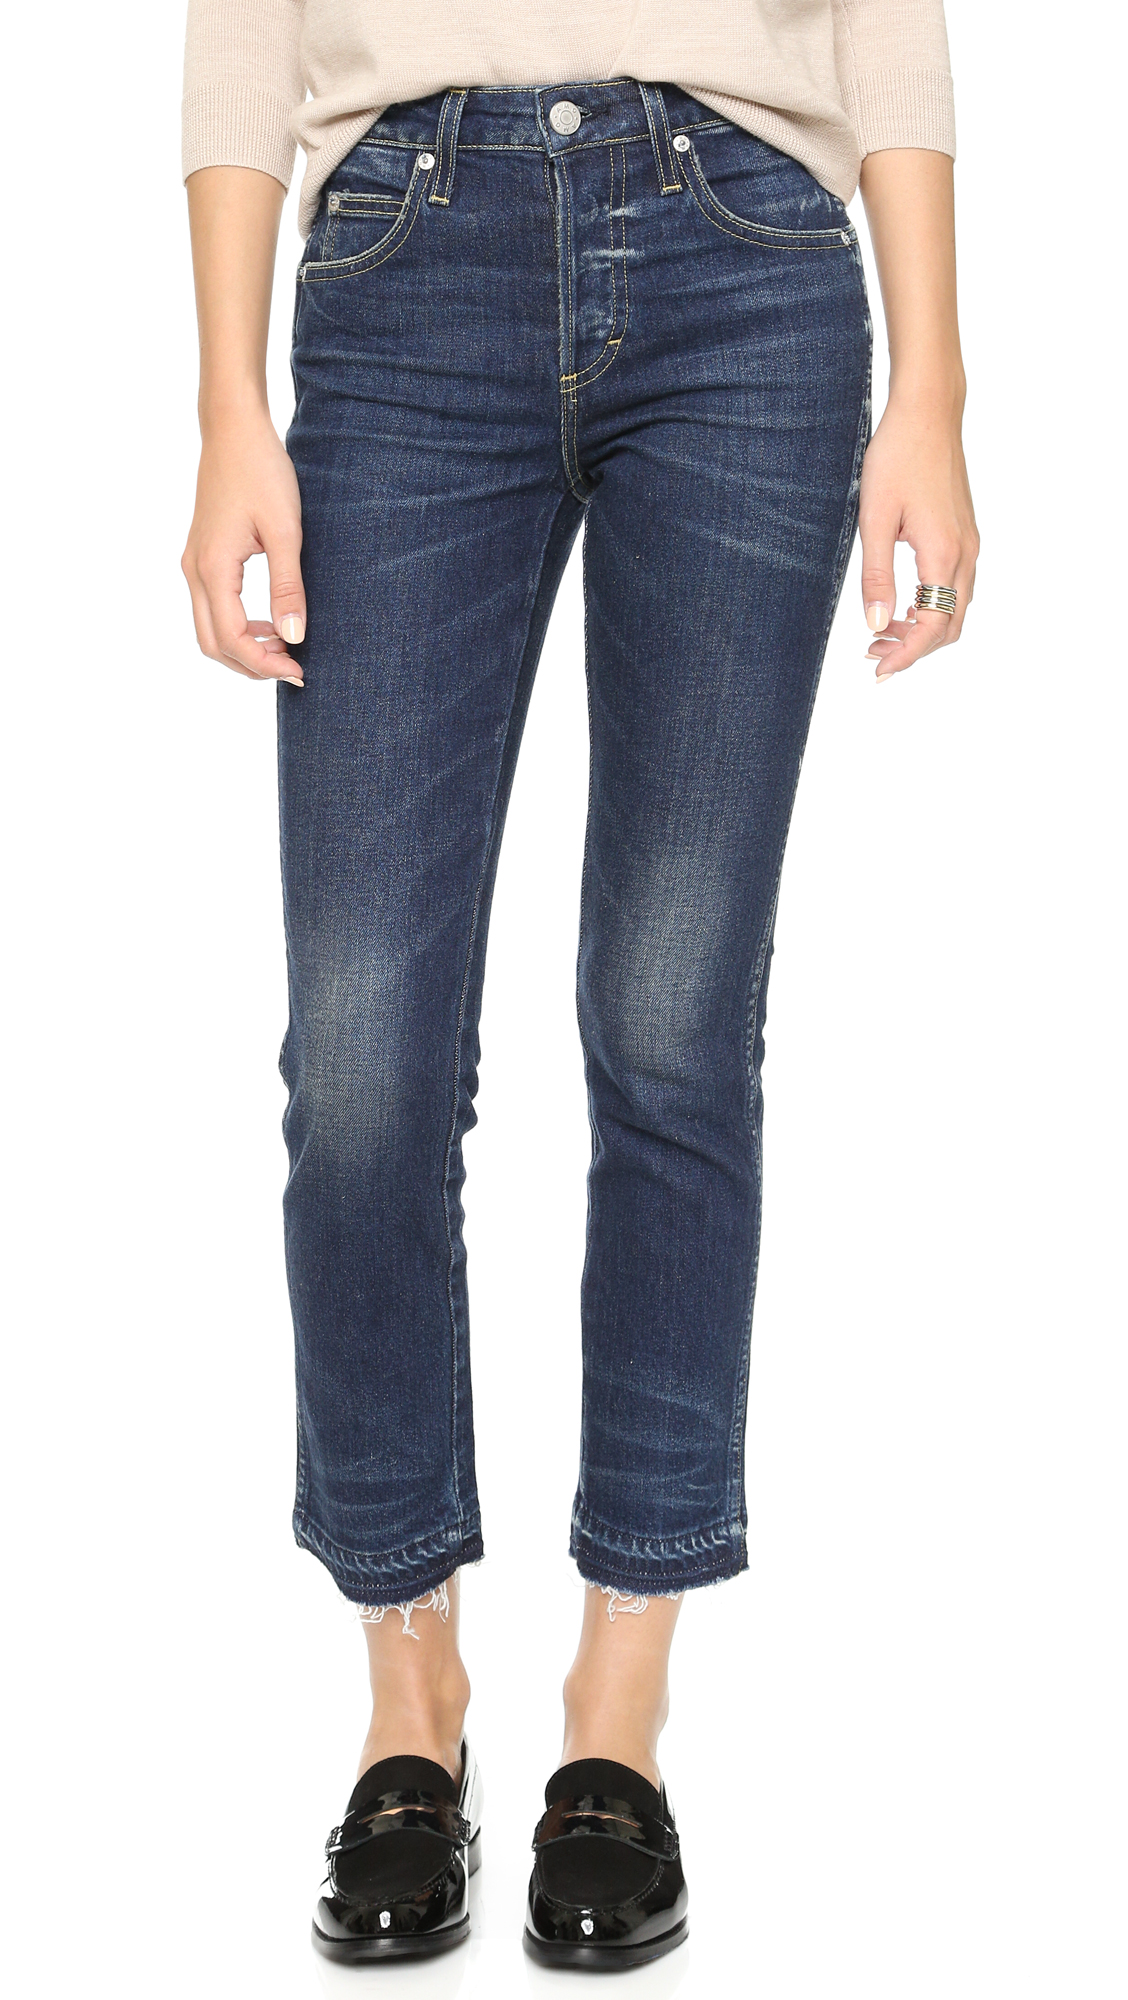 AMO Babe Cropped Jeans - True Blue